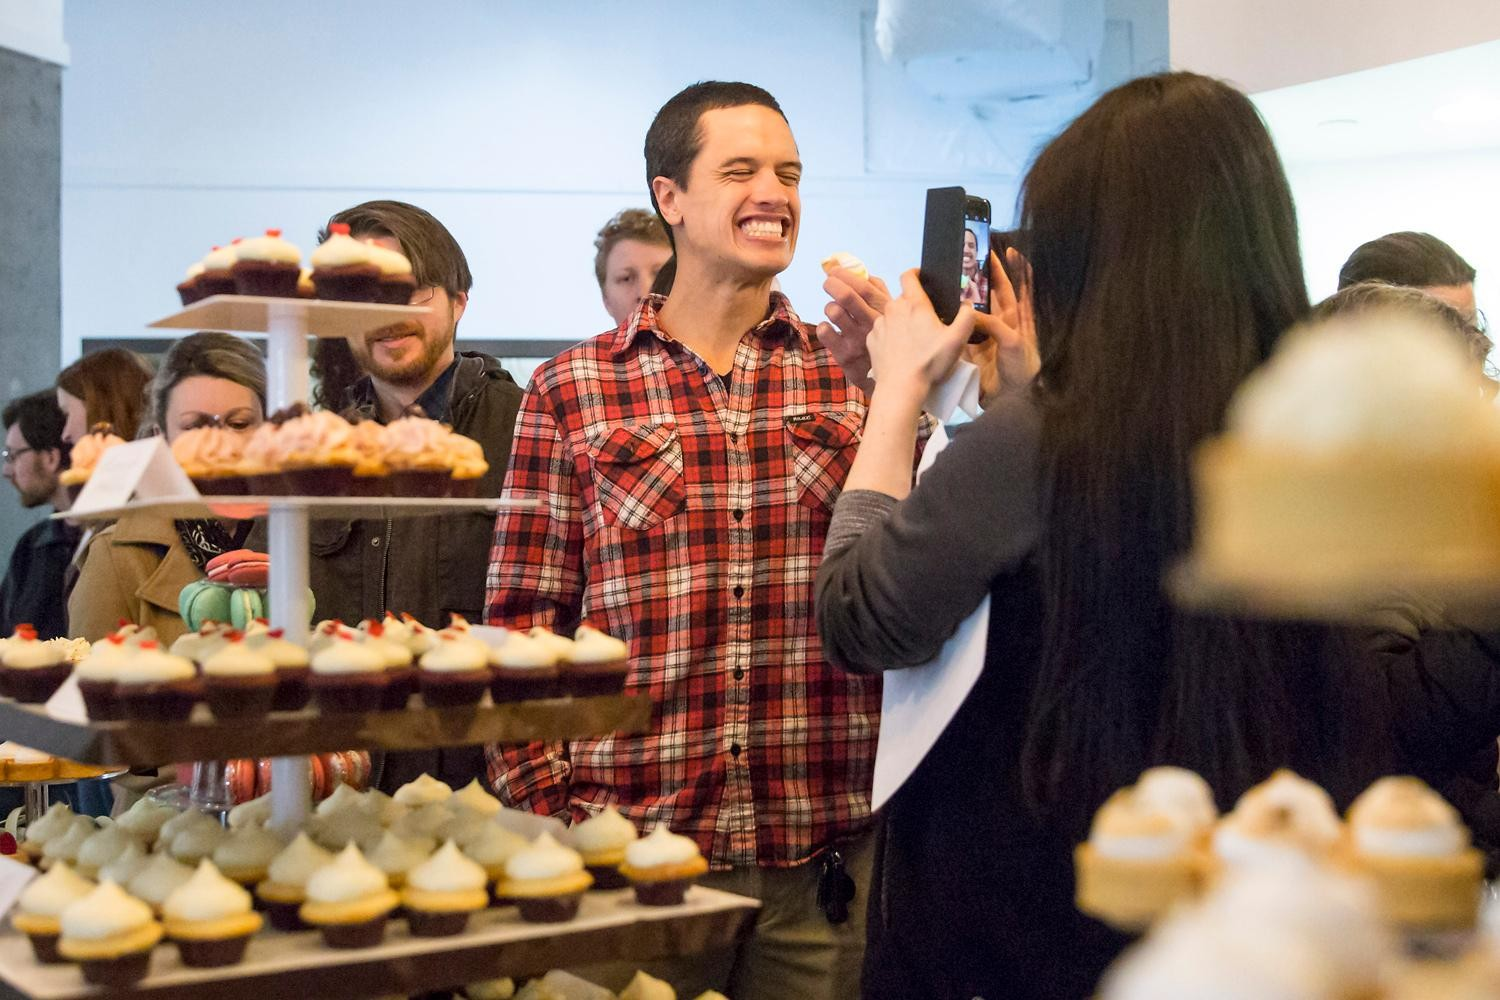 A guest of the VIP Wedding Tasting tries one of the mini cupcakes at Trophy Cupcakes at the Bravern. Guests were able to try the delectable cupcakes, 6-inch cakes, macarons, meringues, and other goodies on display while sipping champagne. (Sy Bean / Seattle Refined)<p></p>